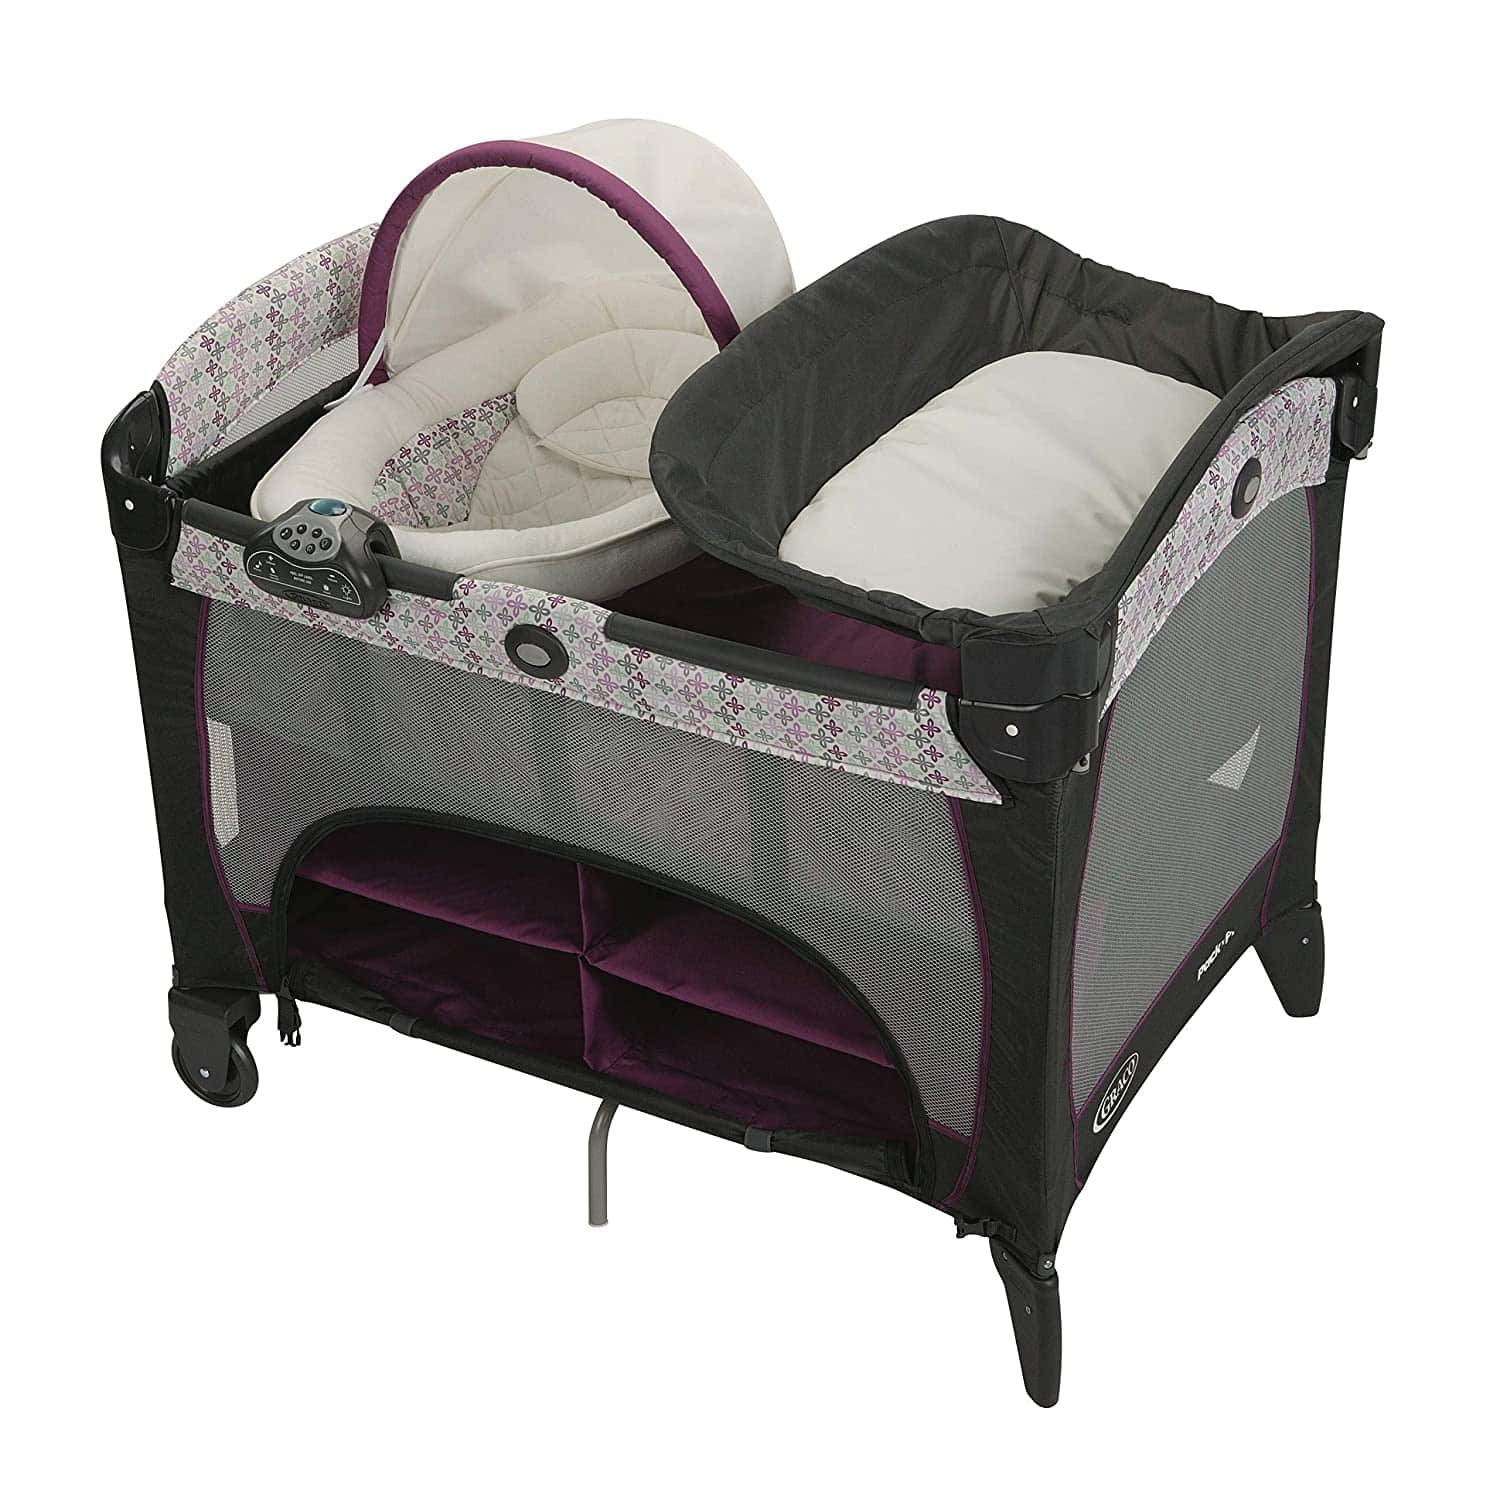 list of the bassinet weight limit updated 2021